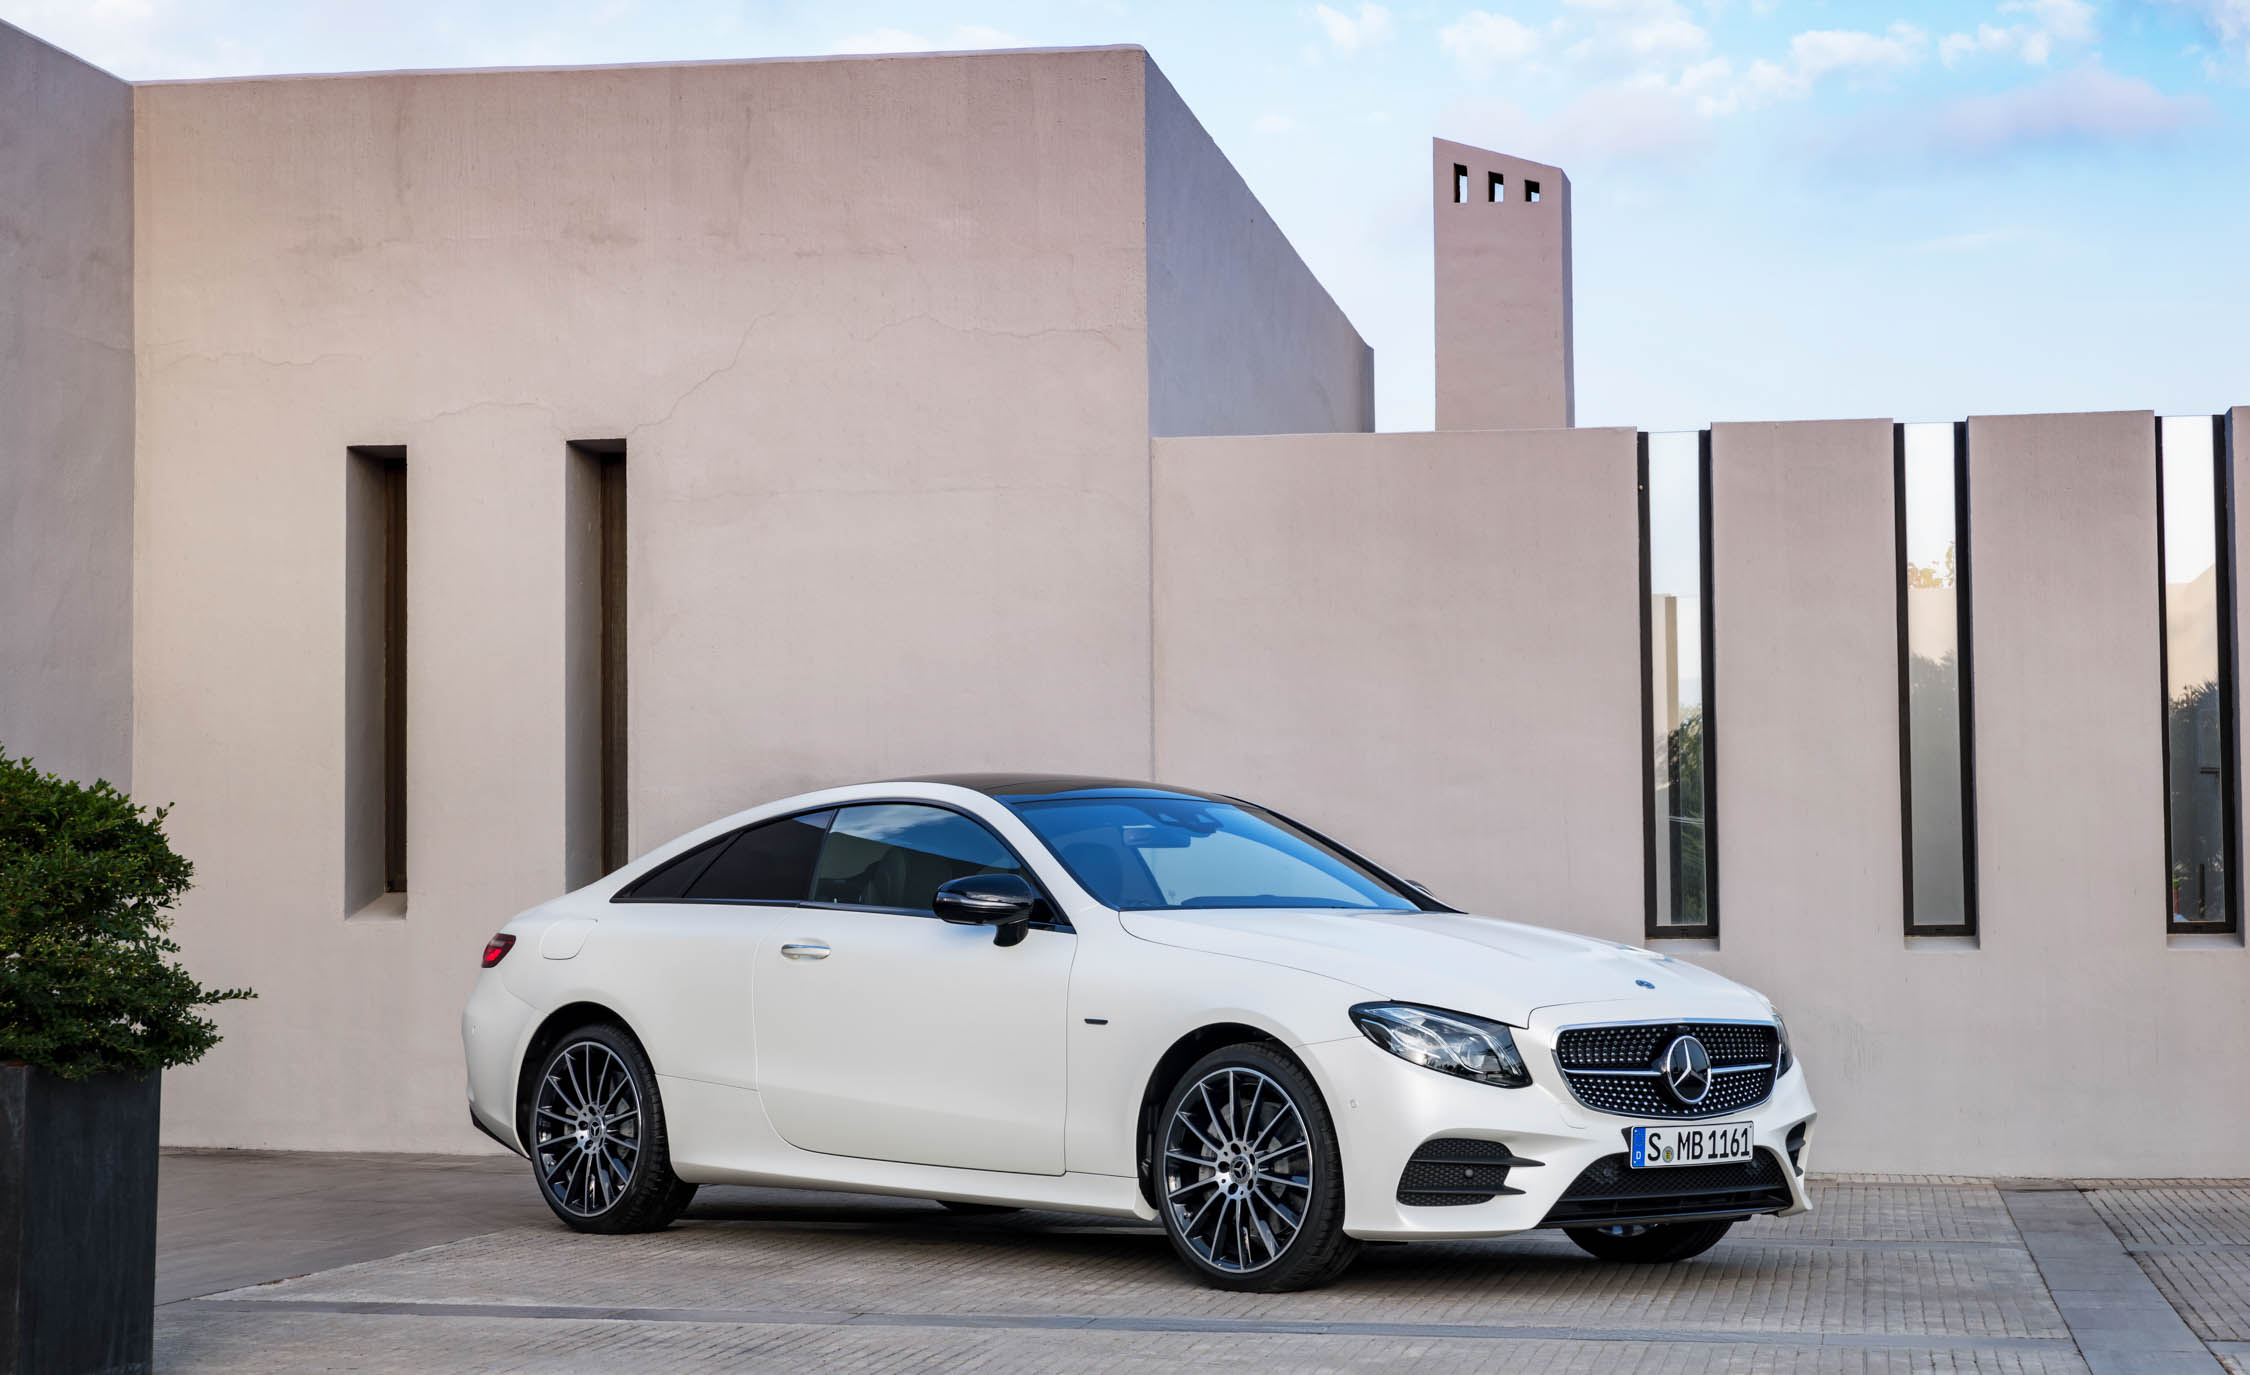 2018 Mercedes Benz E400 Coupe (Photo 8 of 60)